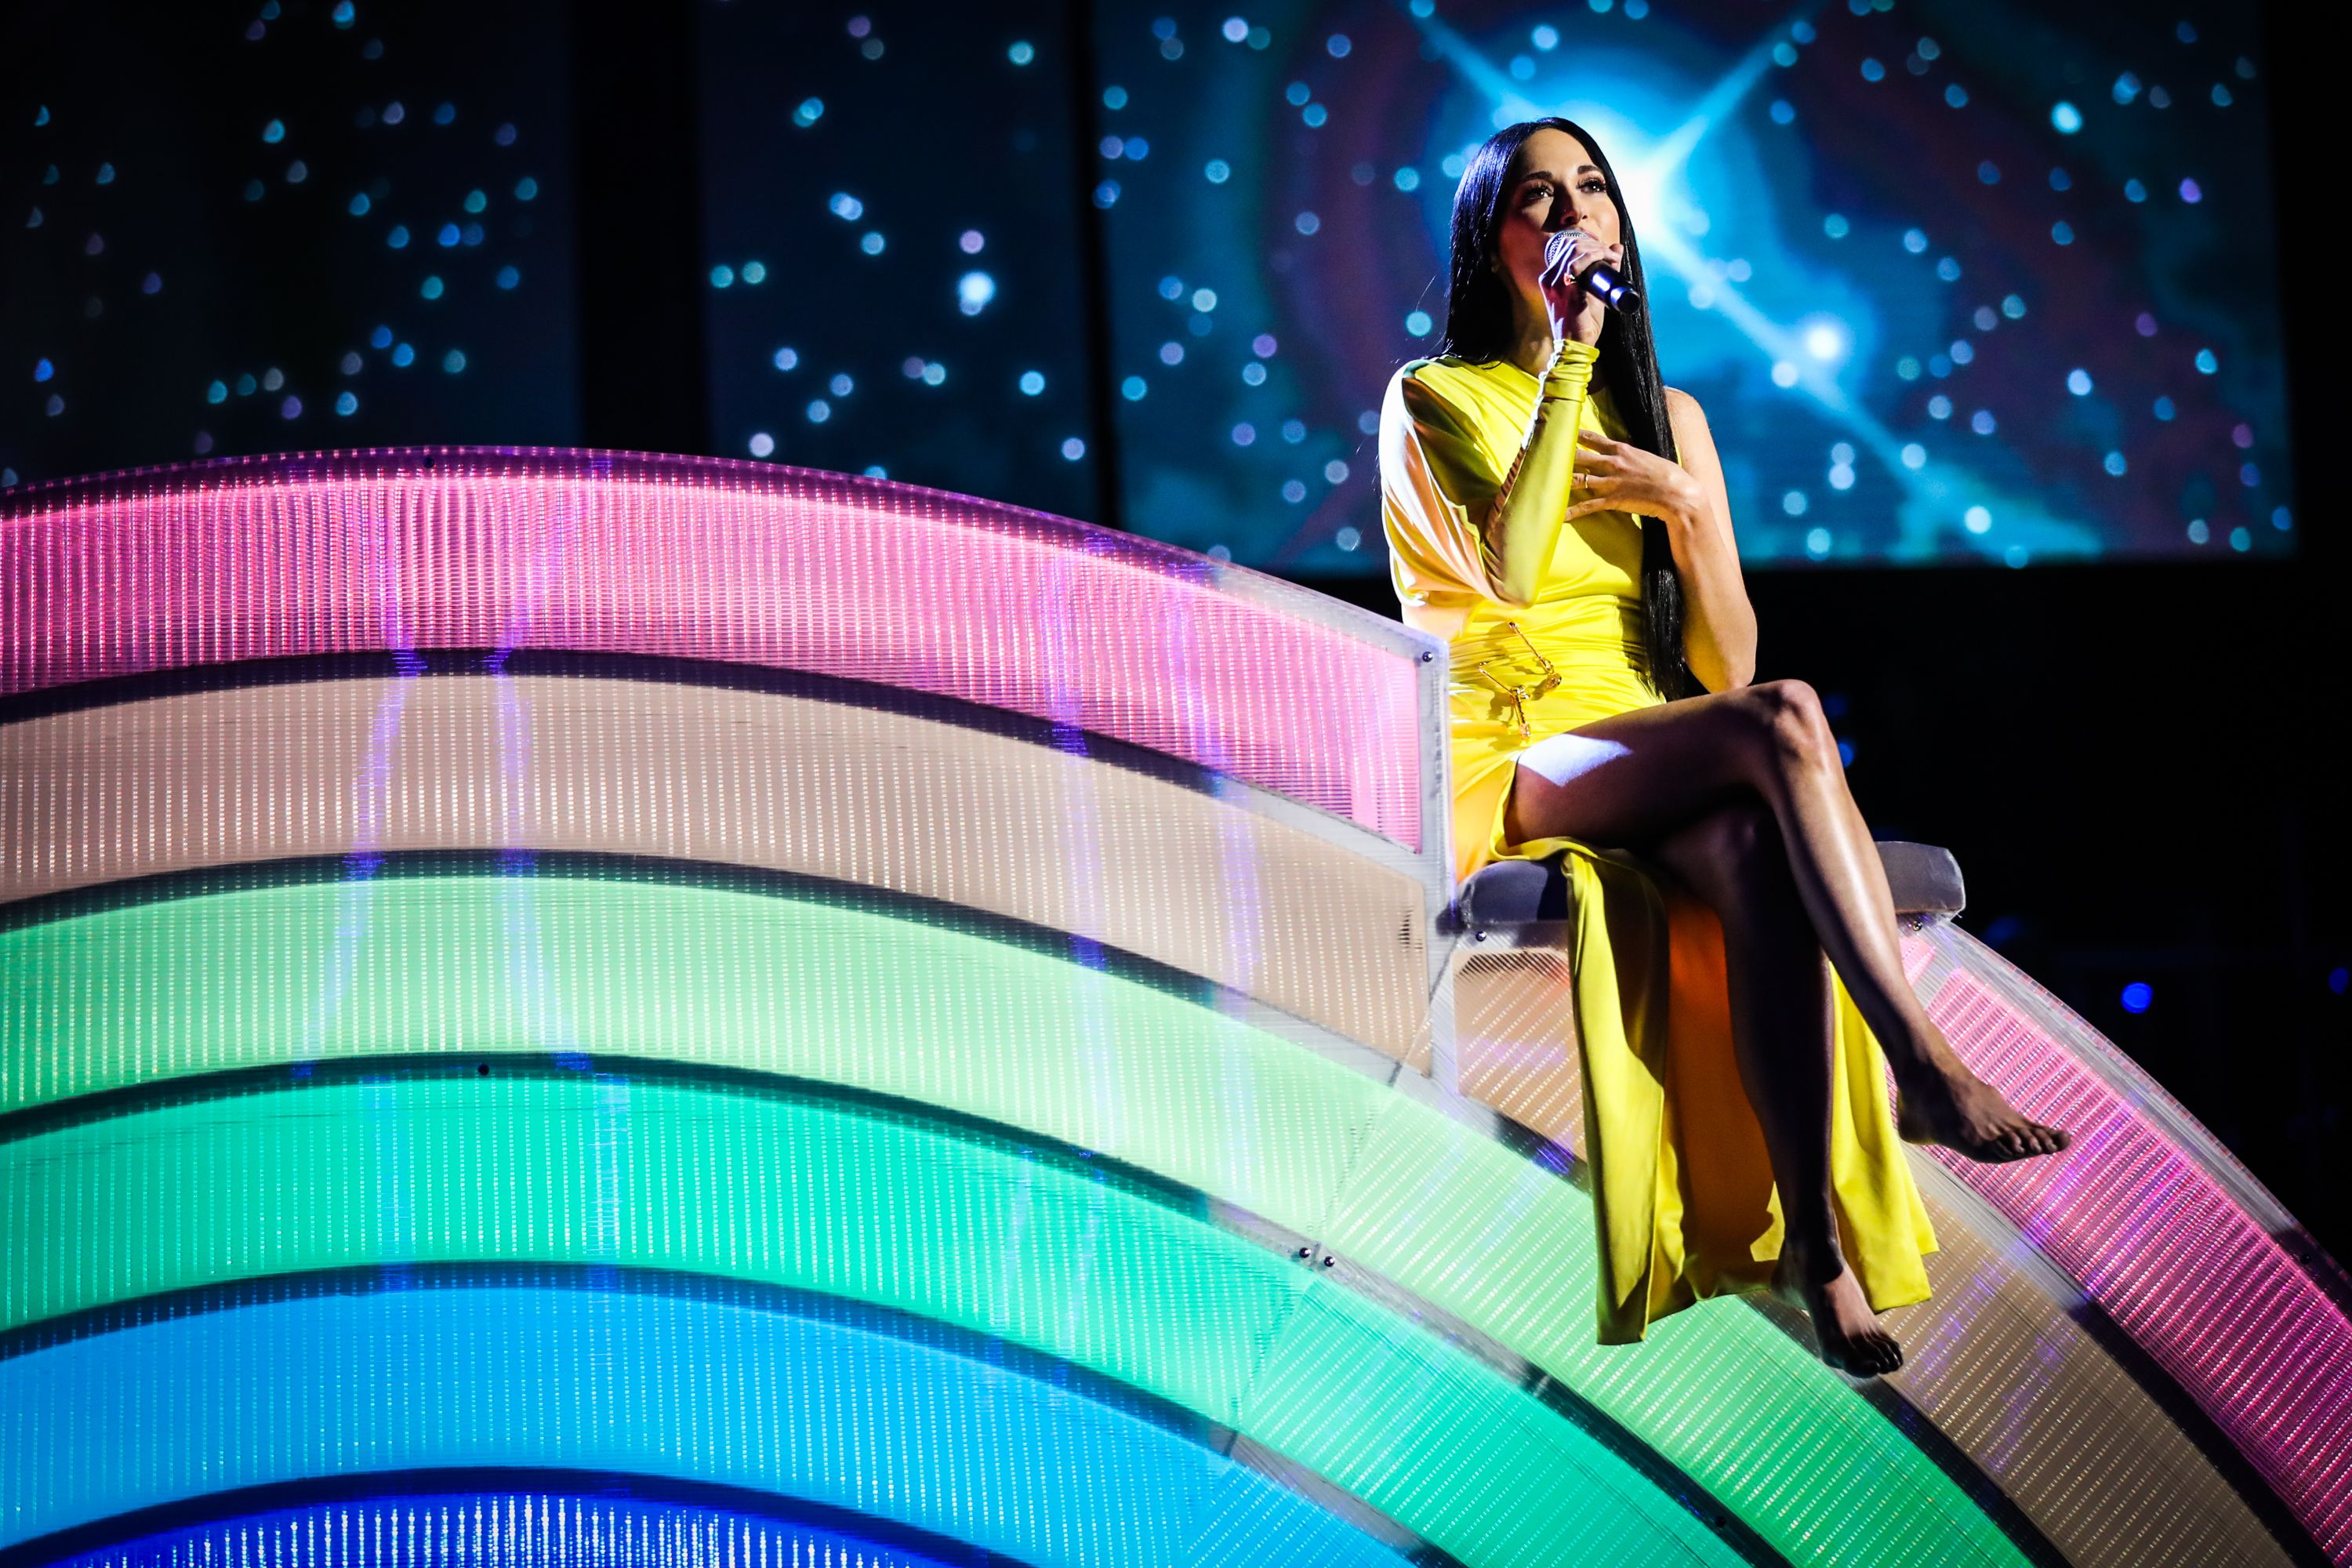 Kacey Musgraves at the 2019 iHeartRadio Music Awards in Los Angeles, California | Source: Getty Images